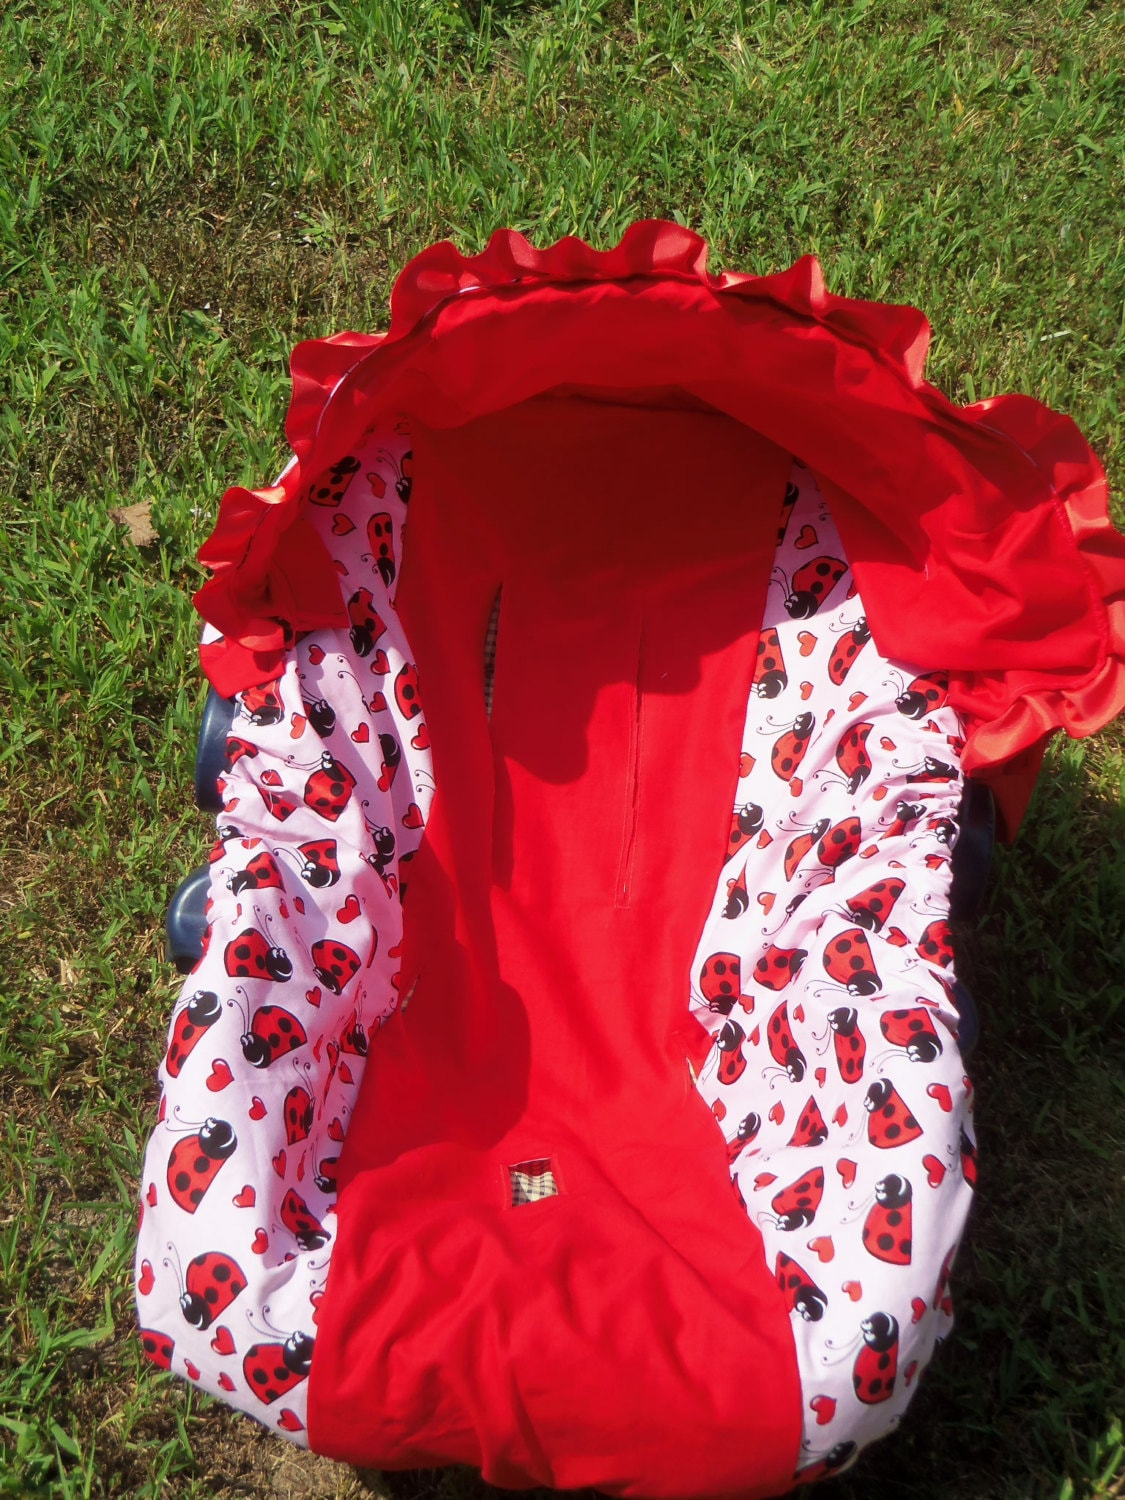 Ladybug Baby Car Seat Cover Infant Seat Cover Slip Cover Graco